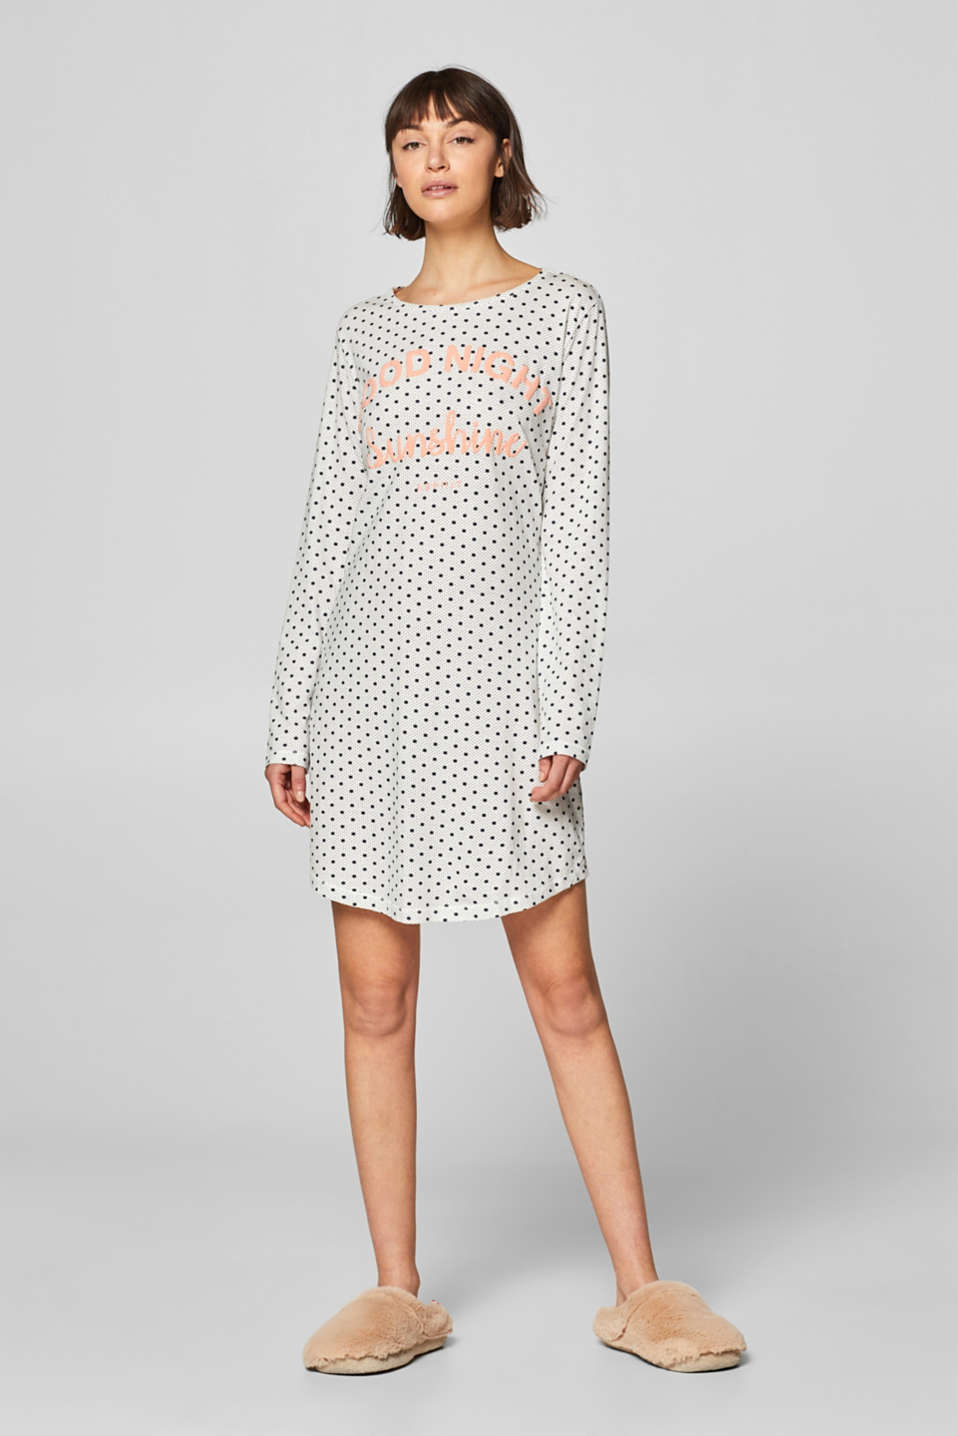 Esprit - Jersey nightshirt with a print, 100% cotton